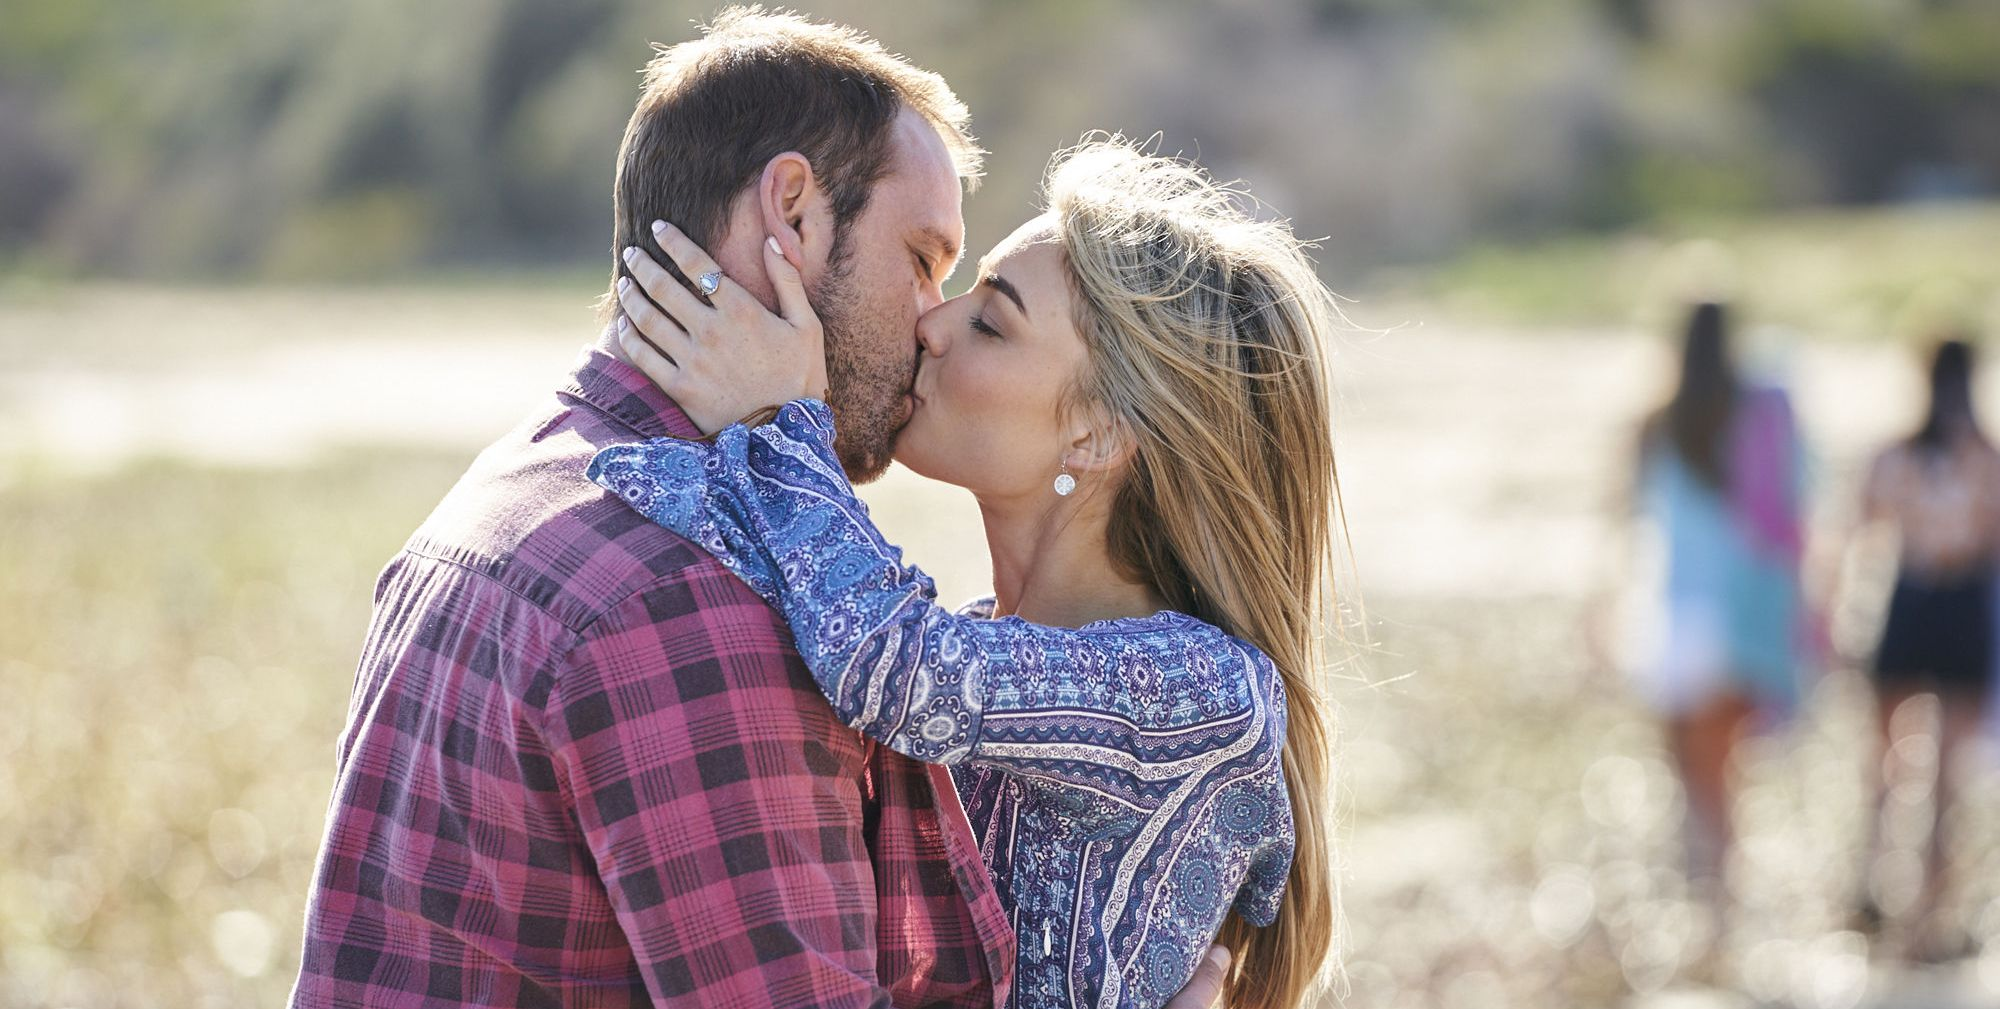 Home and Away: 19 new spoiler pictures as Robbo makes surprise proposal plans